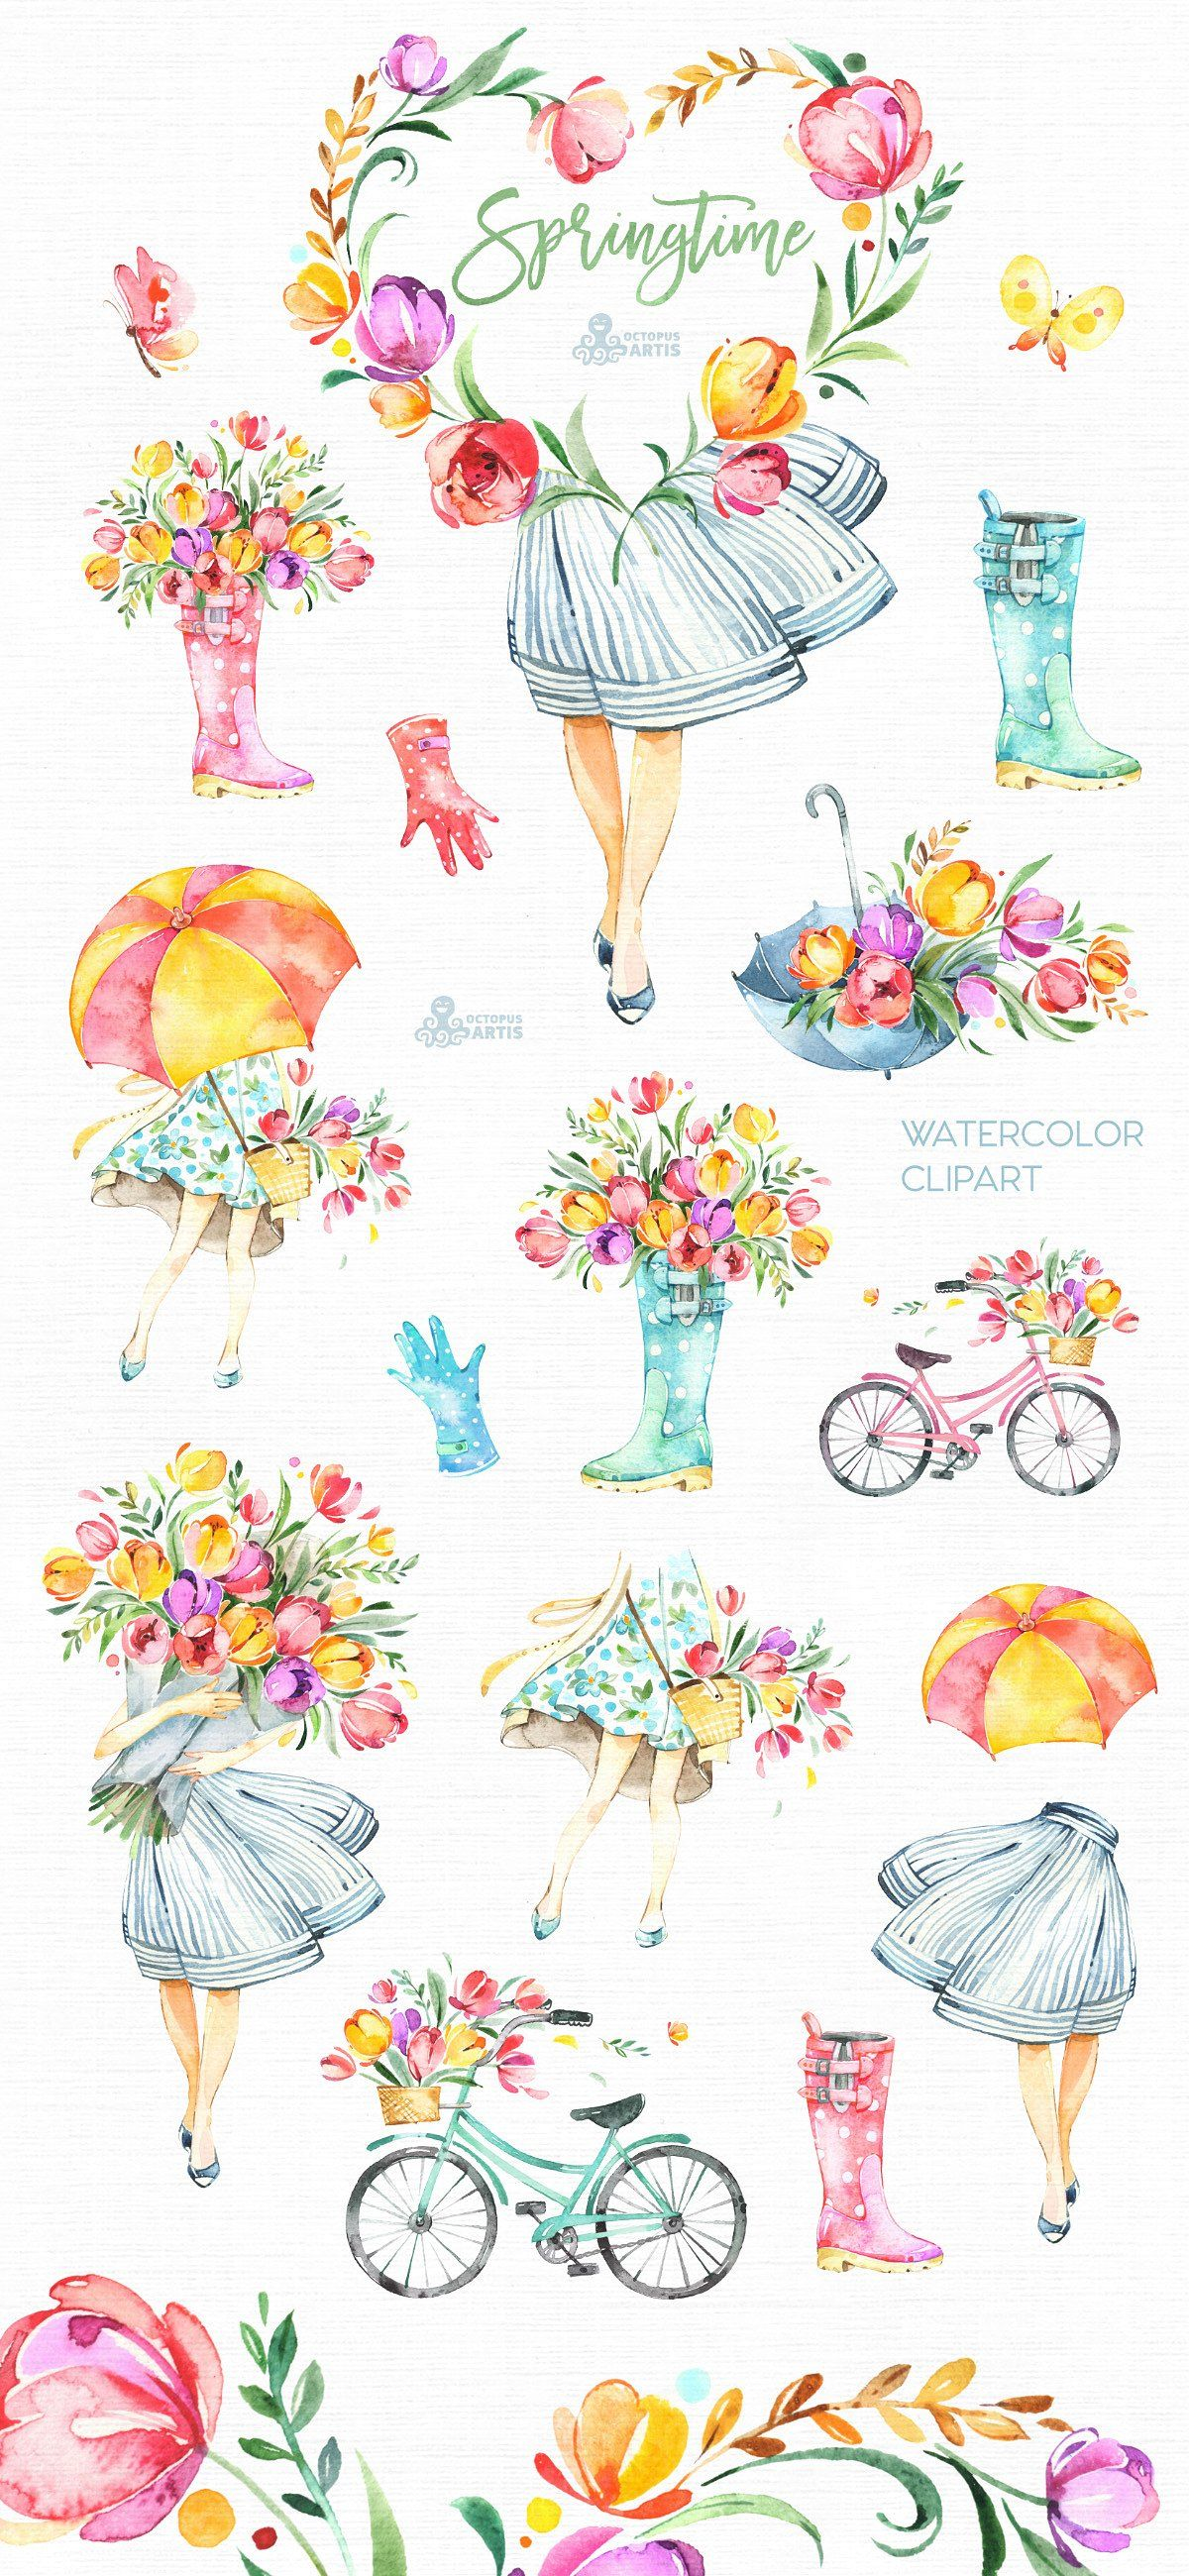 Springtime. Watercolor collection by OctopusArtis on.